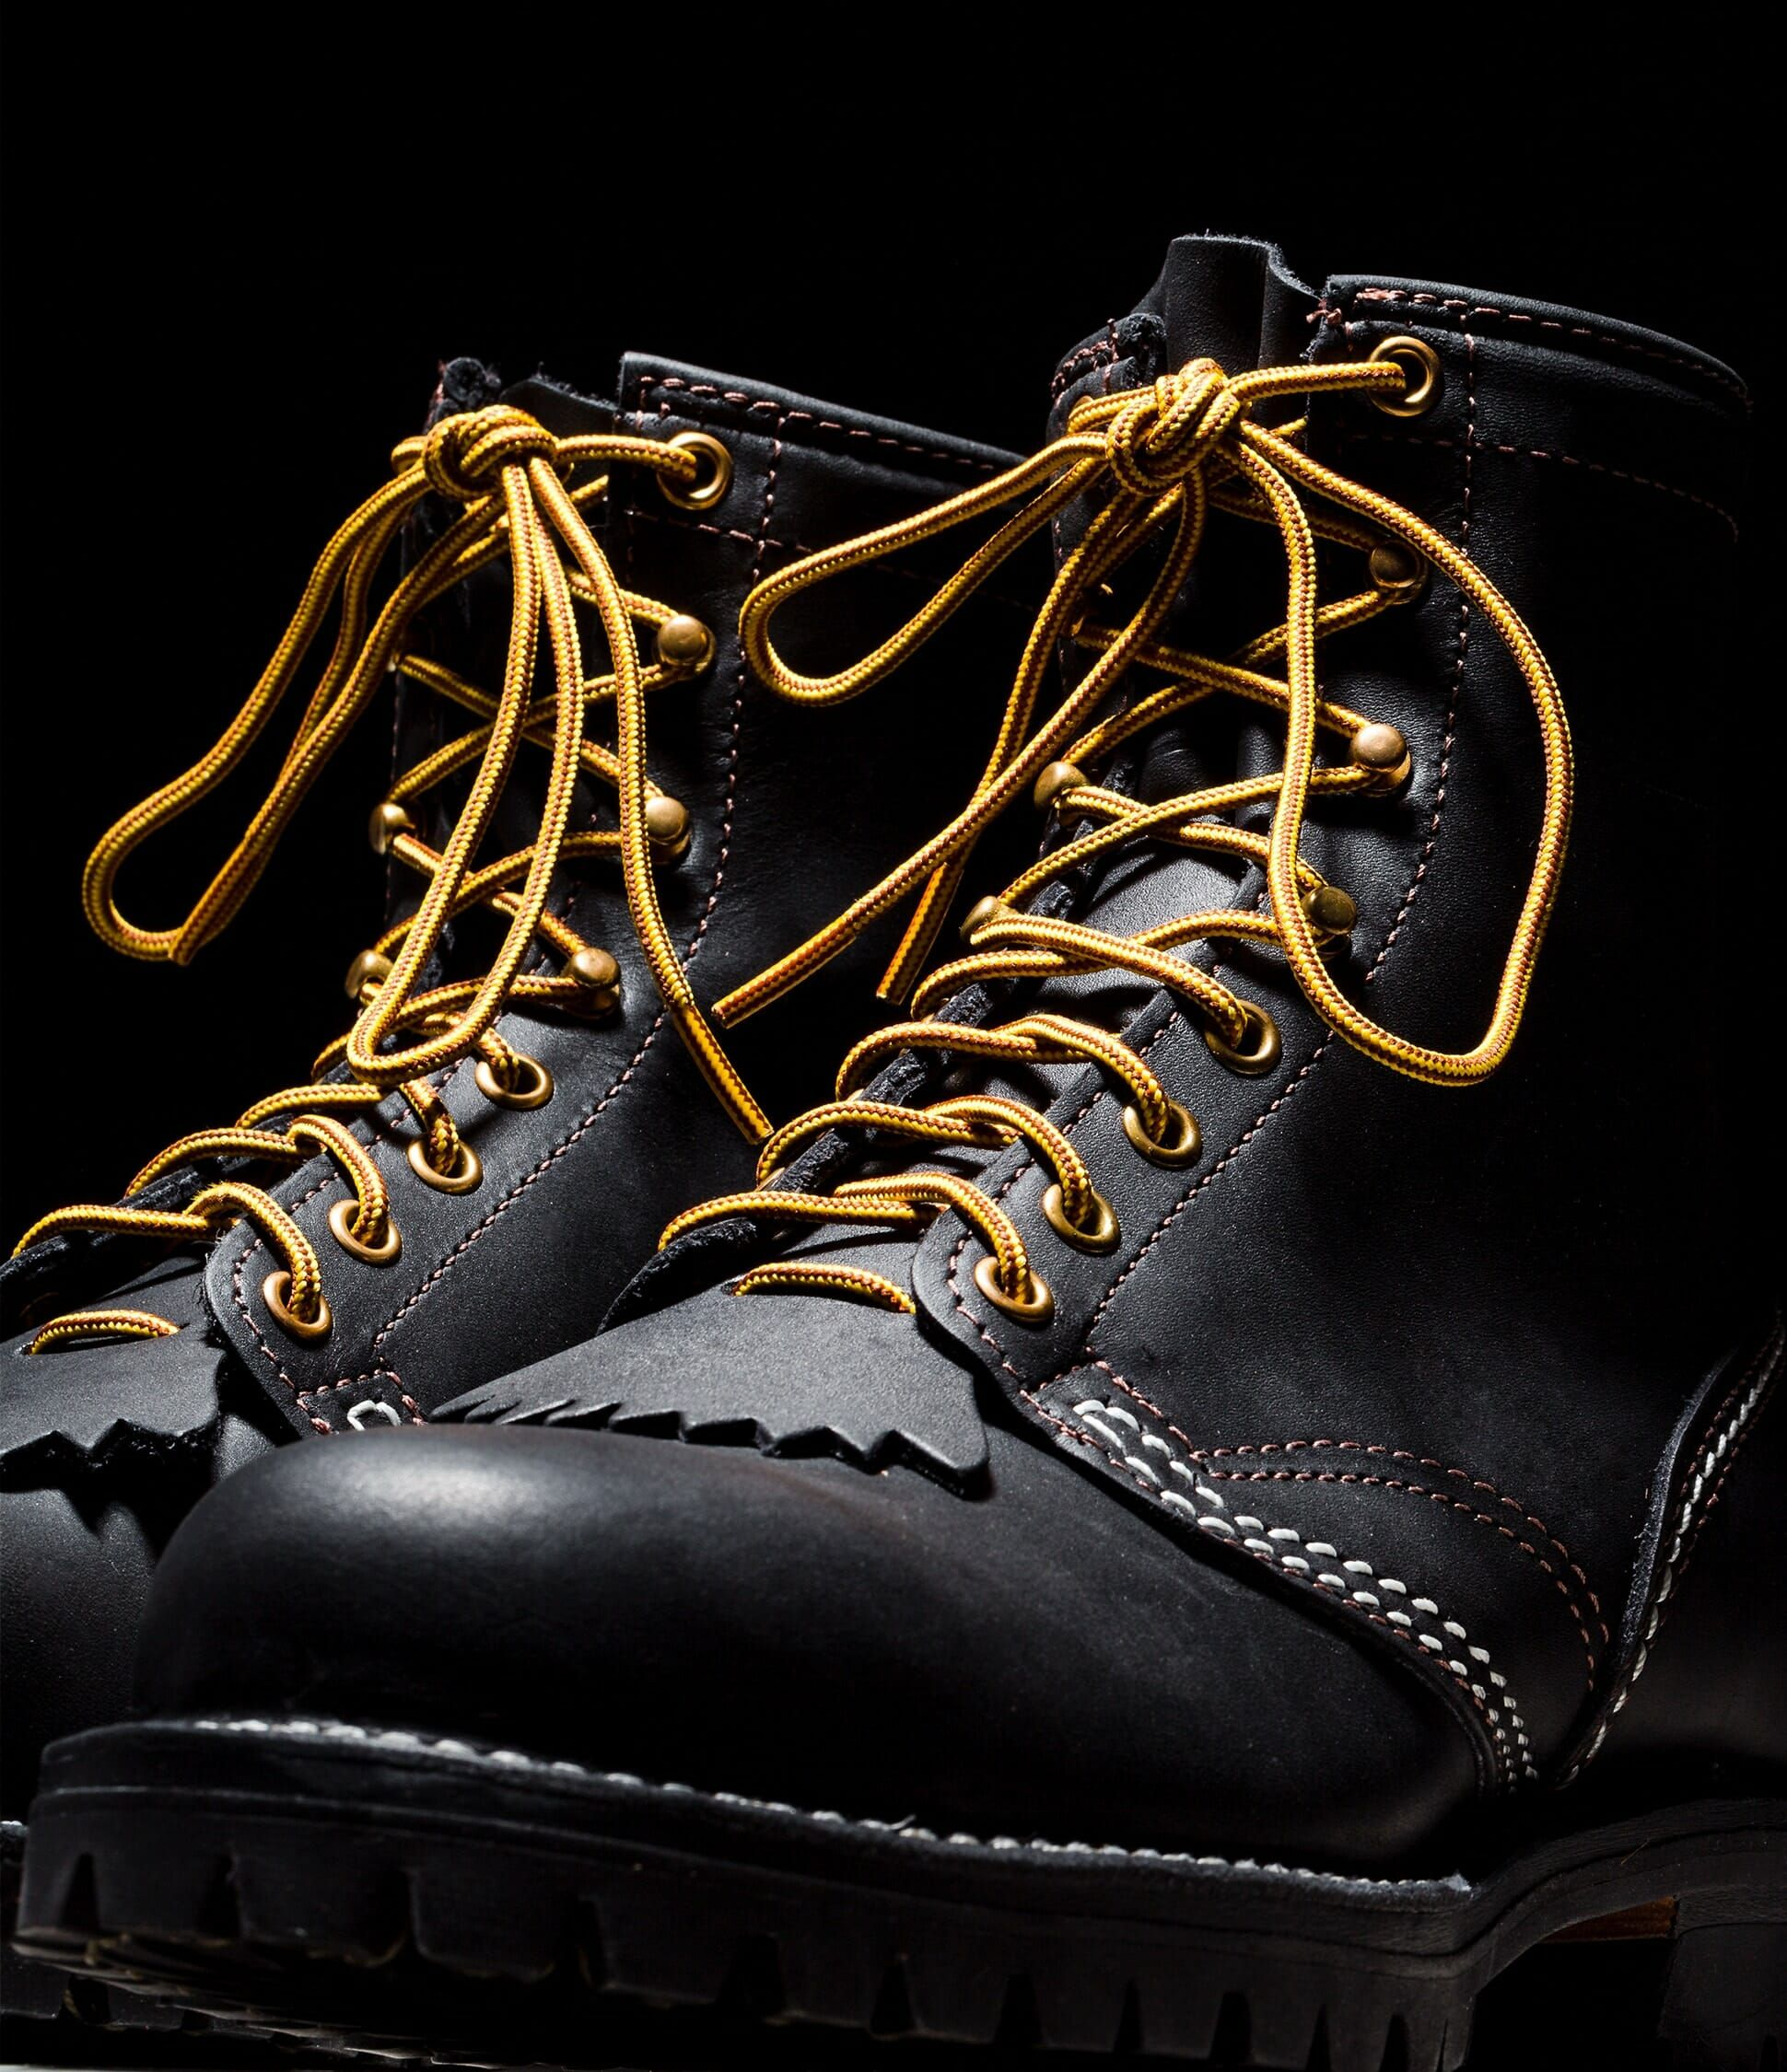 meet coupon codes reasonable price 3 Northwestern Boot Makers You Should Know • Gear Patrol